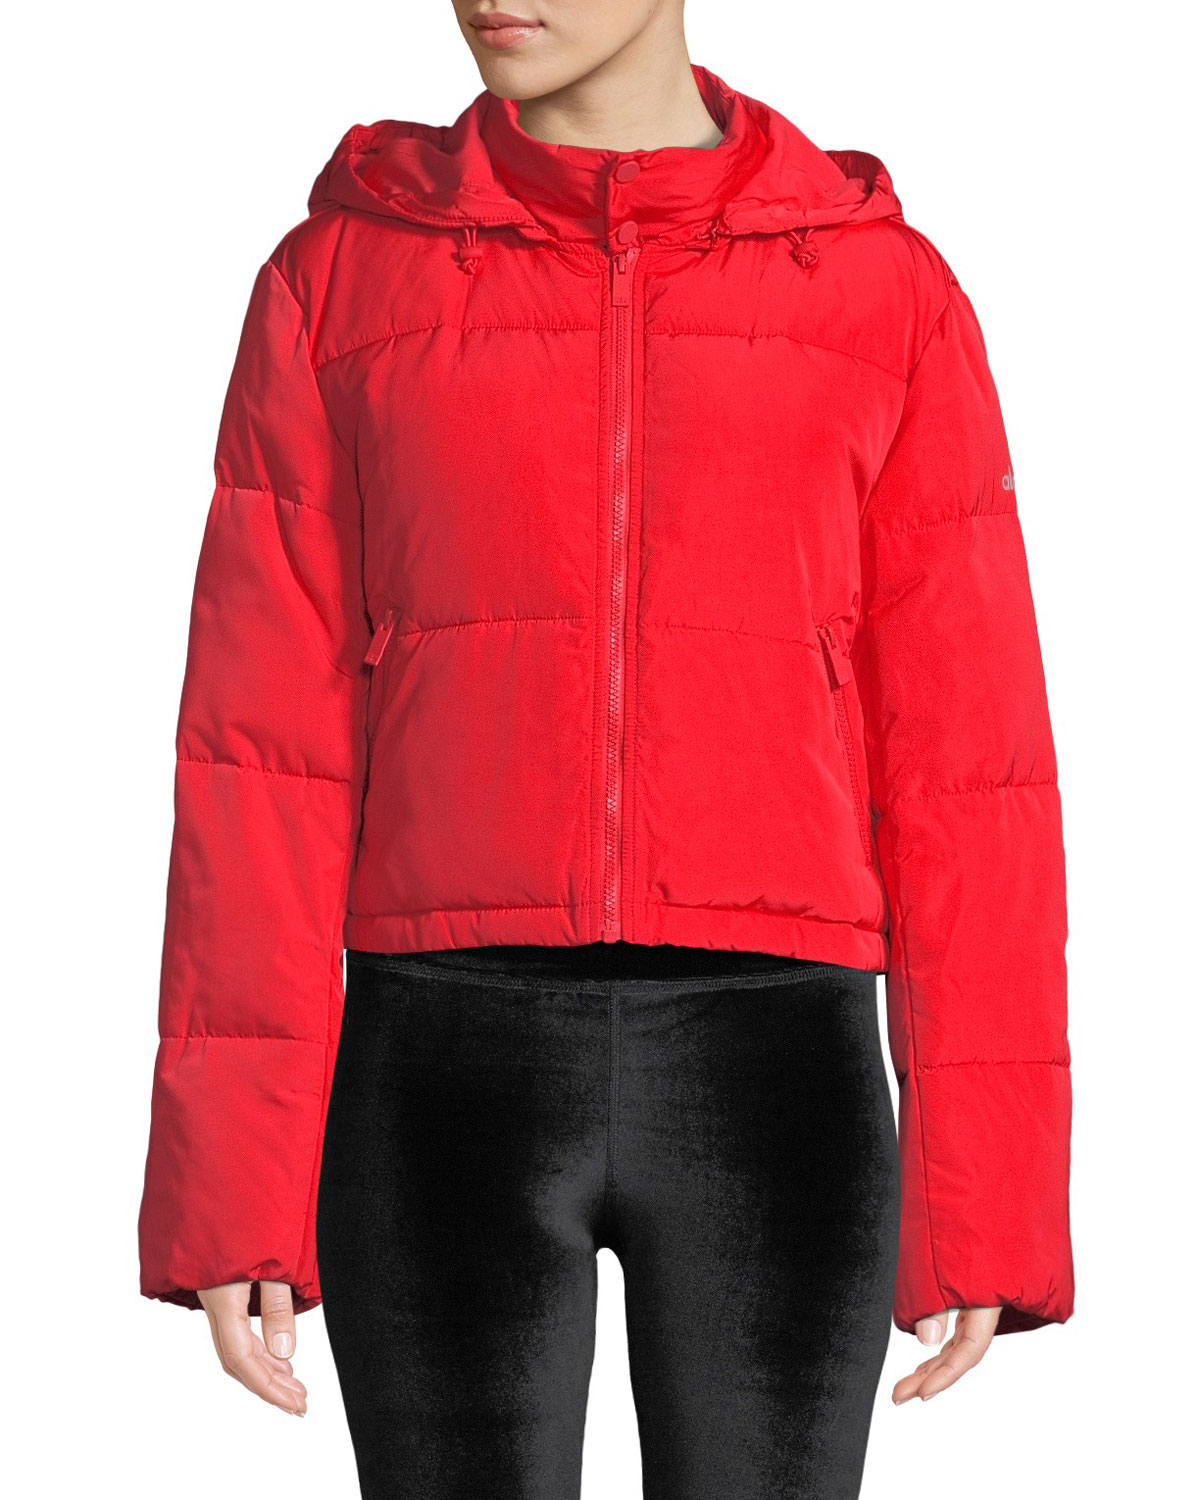 ALO YOGA Introspective Quilted Cropped Jacket in Red